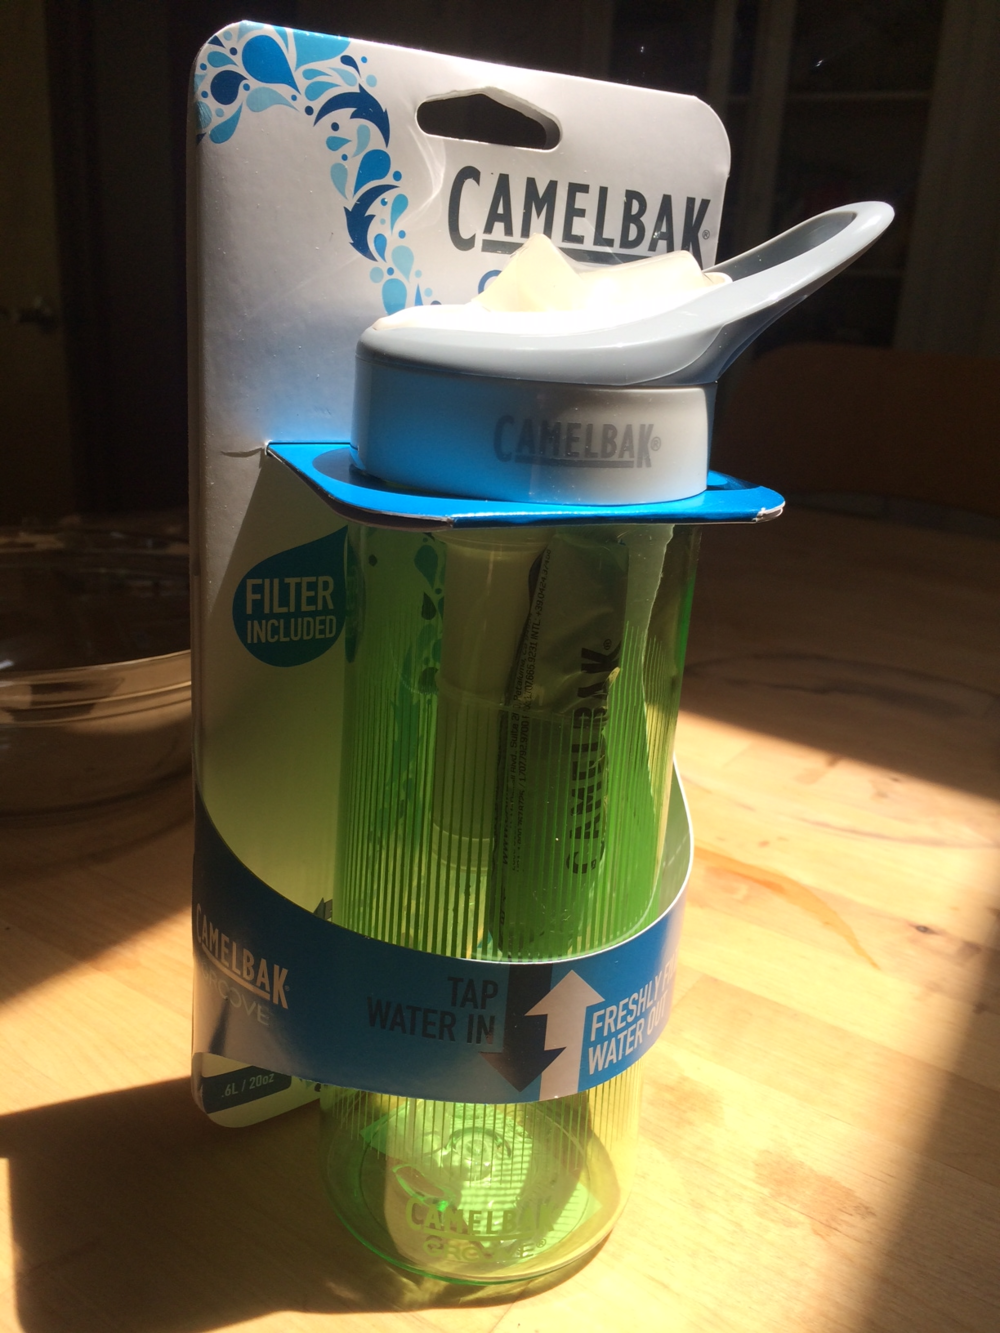 Camelbak 'Groove' water bottle with replaceable filter Step 1: Fill with ice water